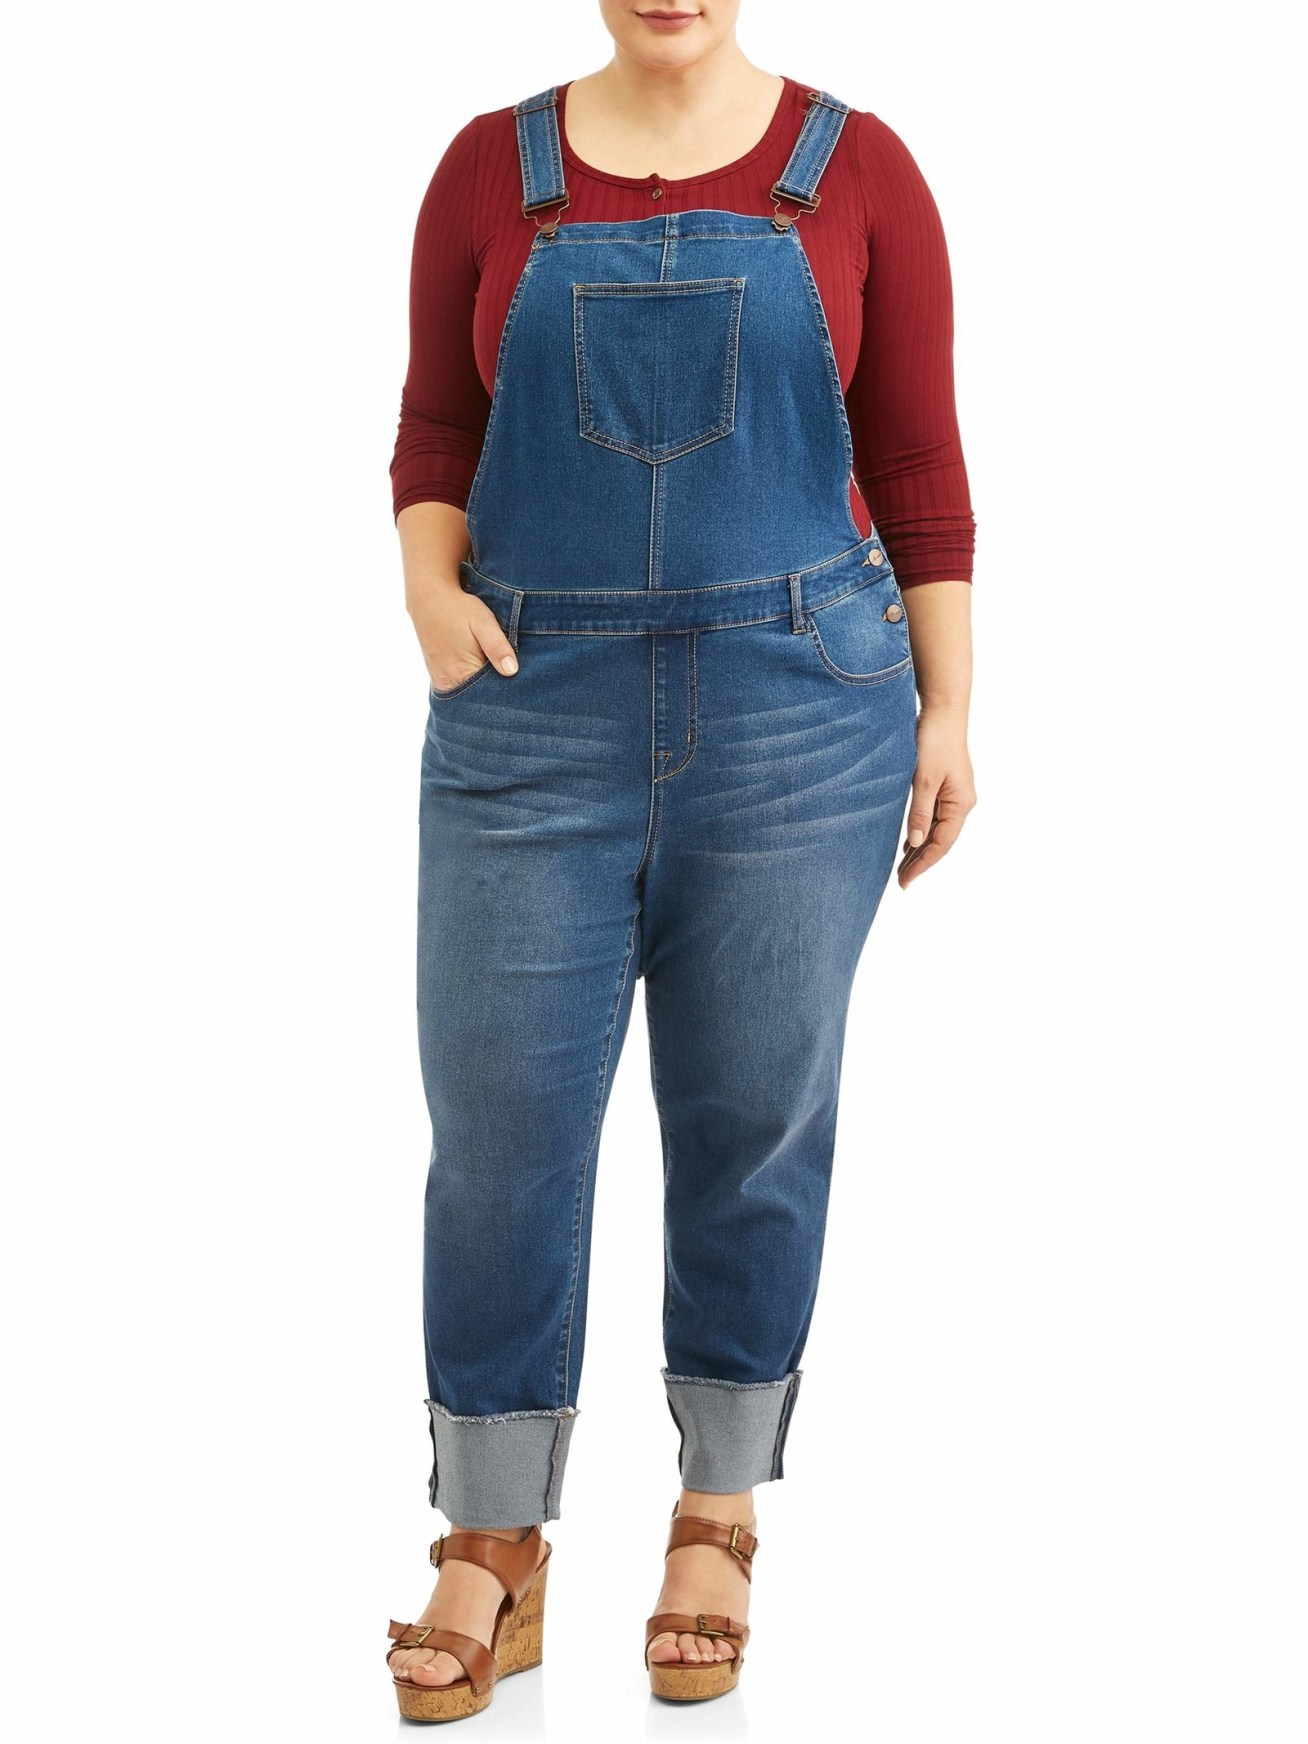 Price: .99 (available in sizes 16–26 and two washes)